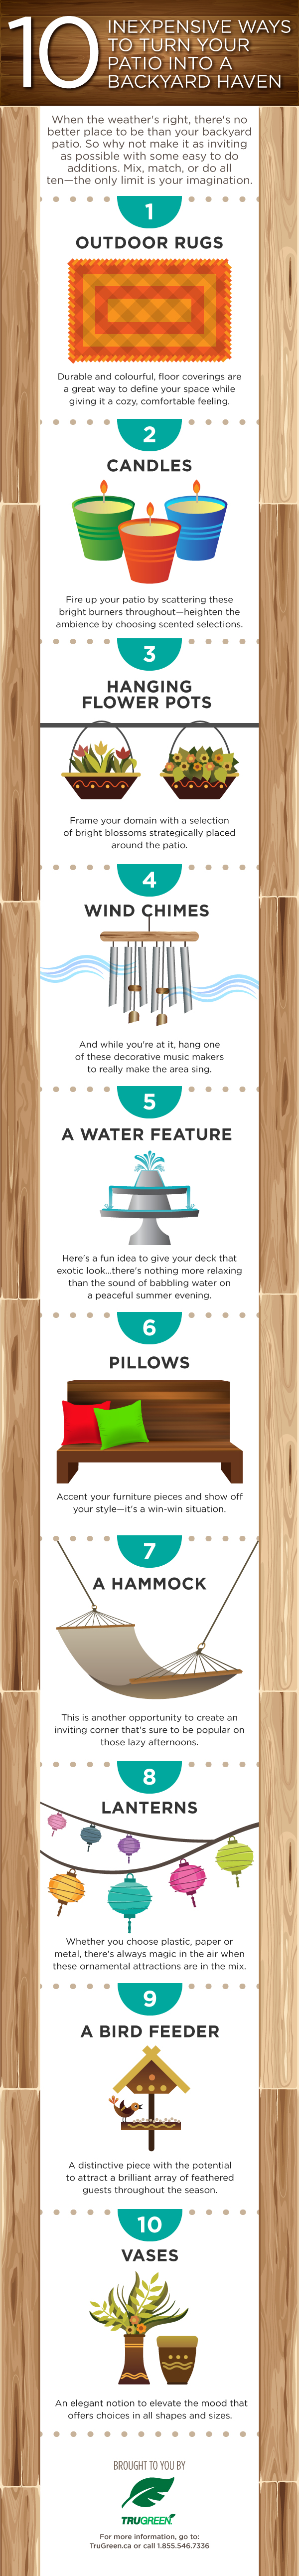 Patio prep, Spring prep for your patio, Spring yard prep, decorating your patio, prepping your yard for Spring, TruGreen infographic